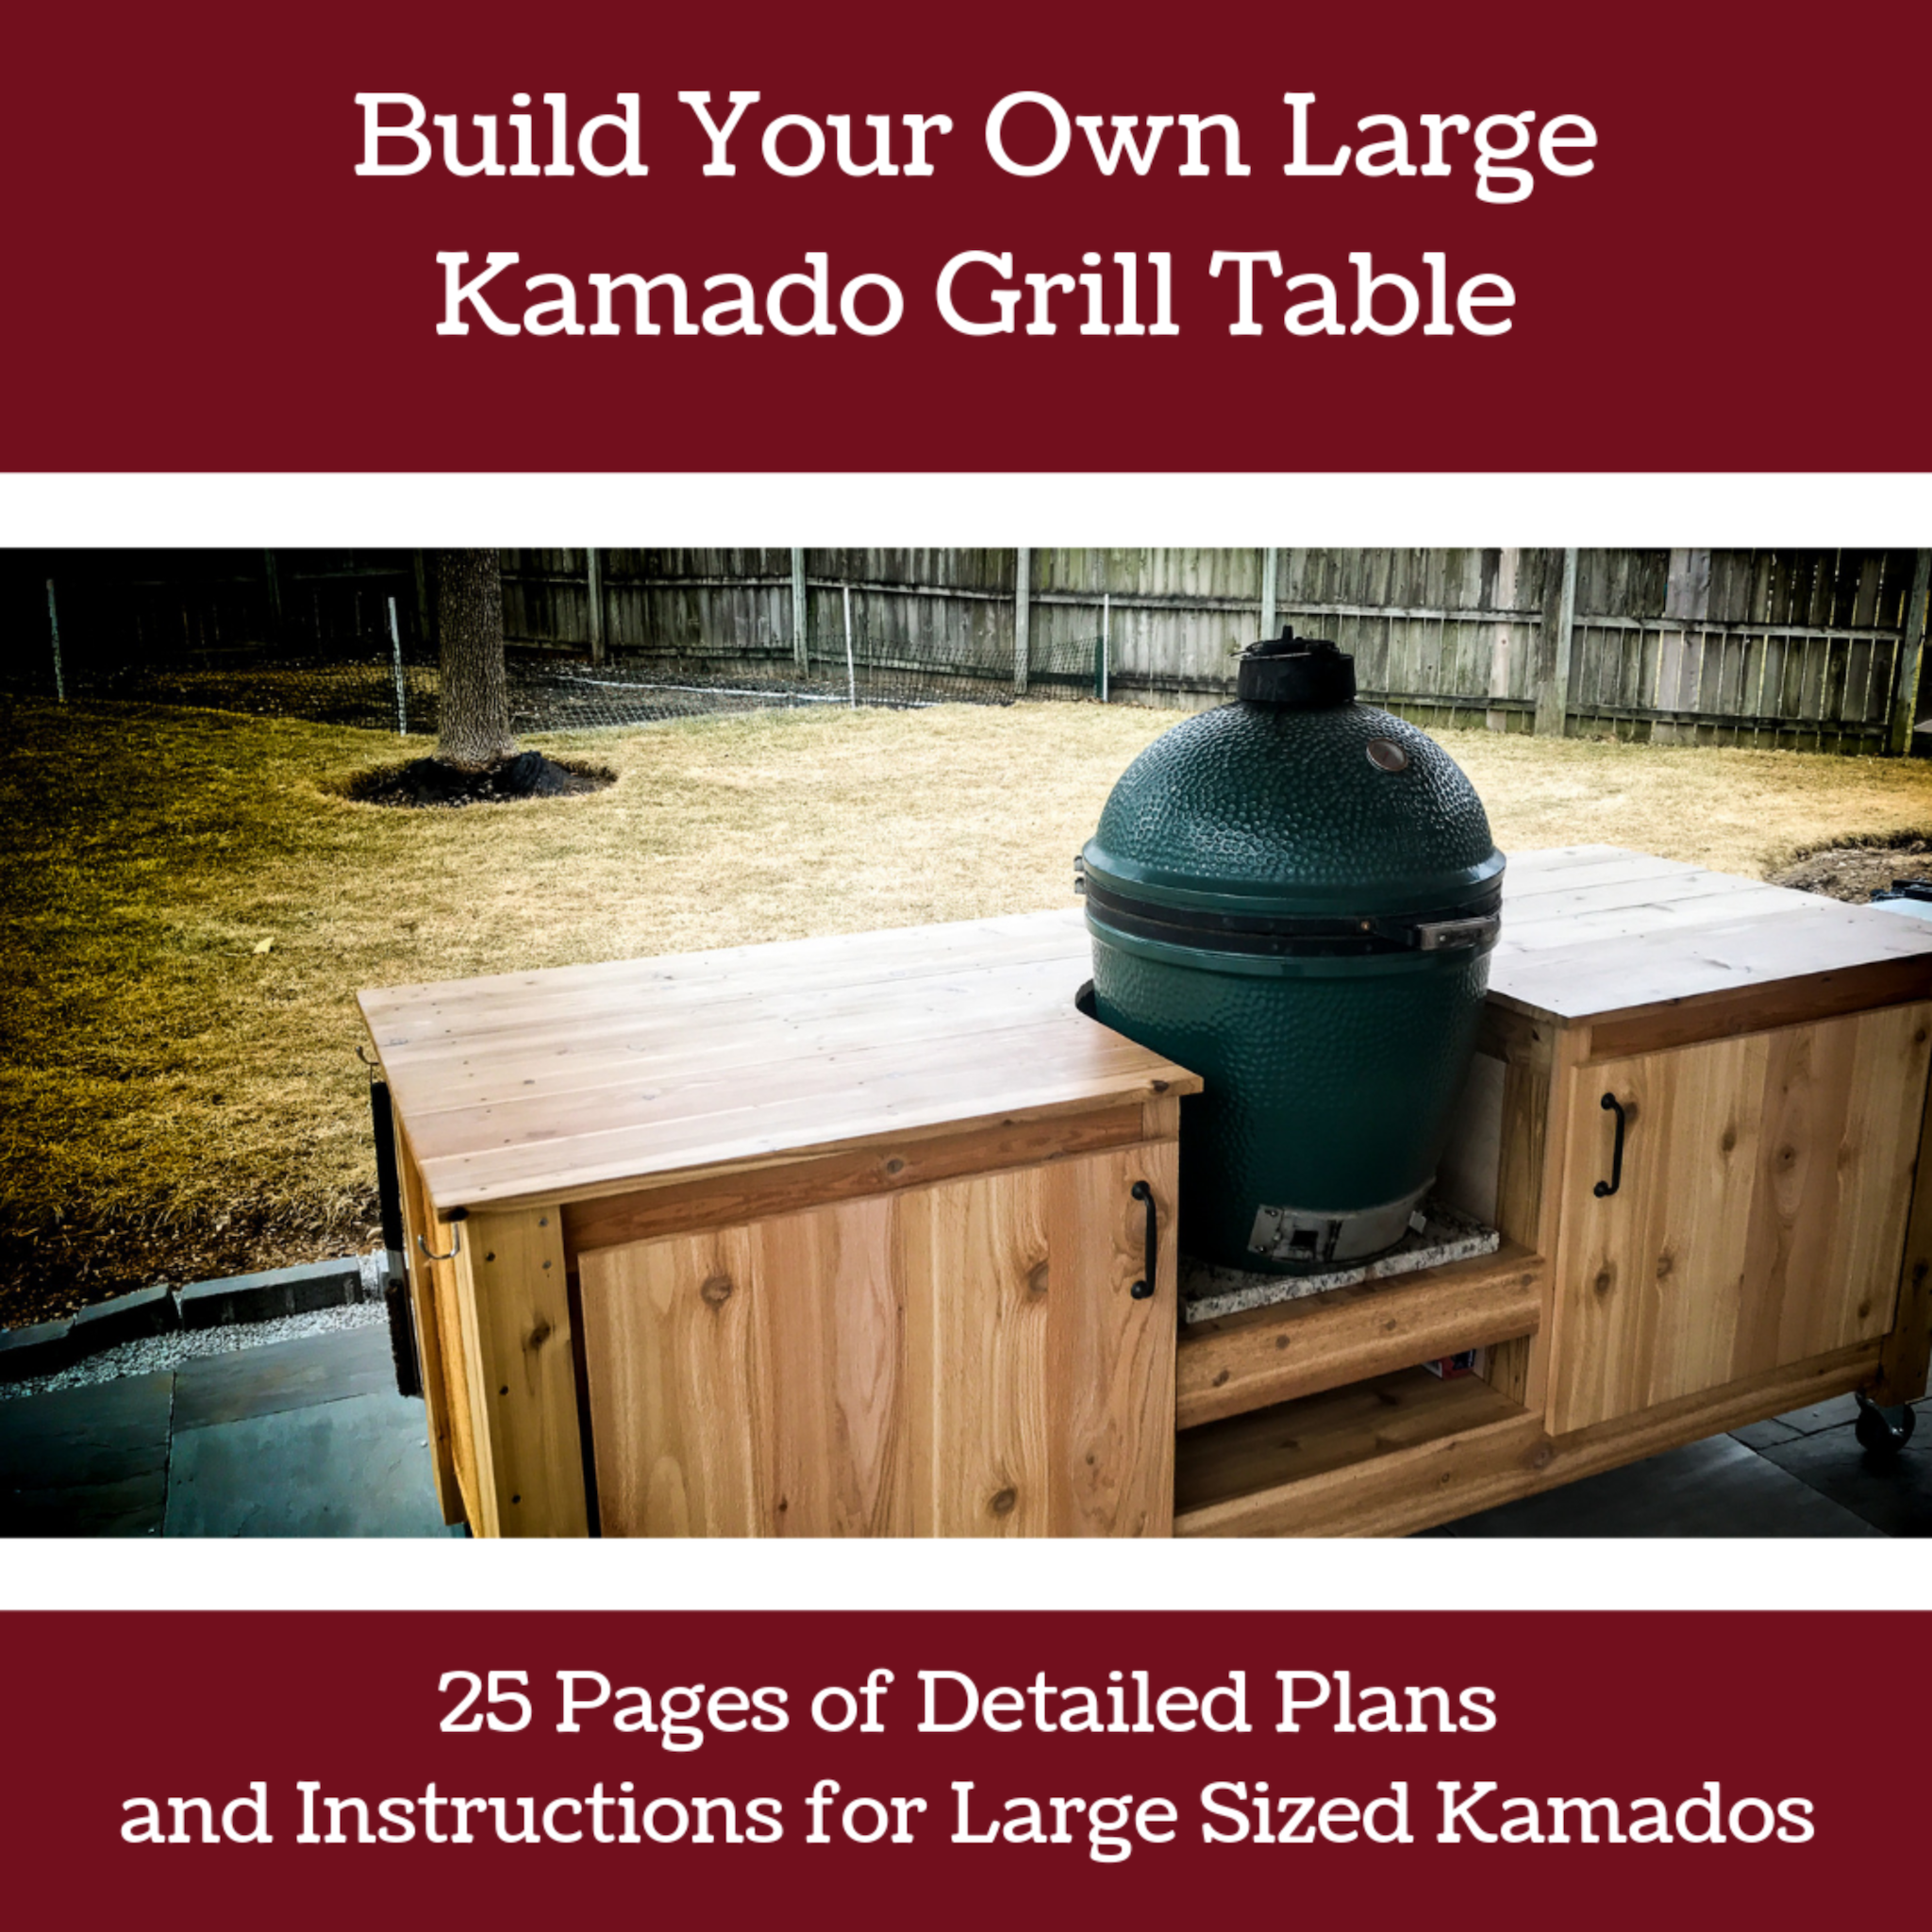 Build Your Own Kamado Grill Table Seared Smoked